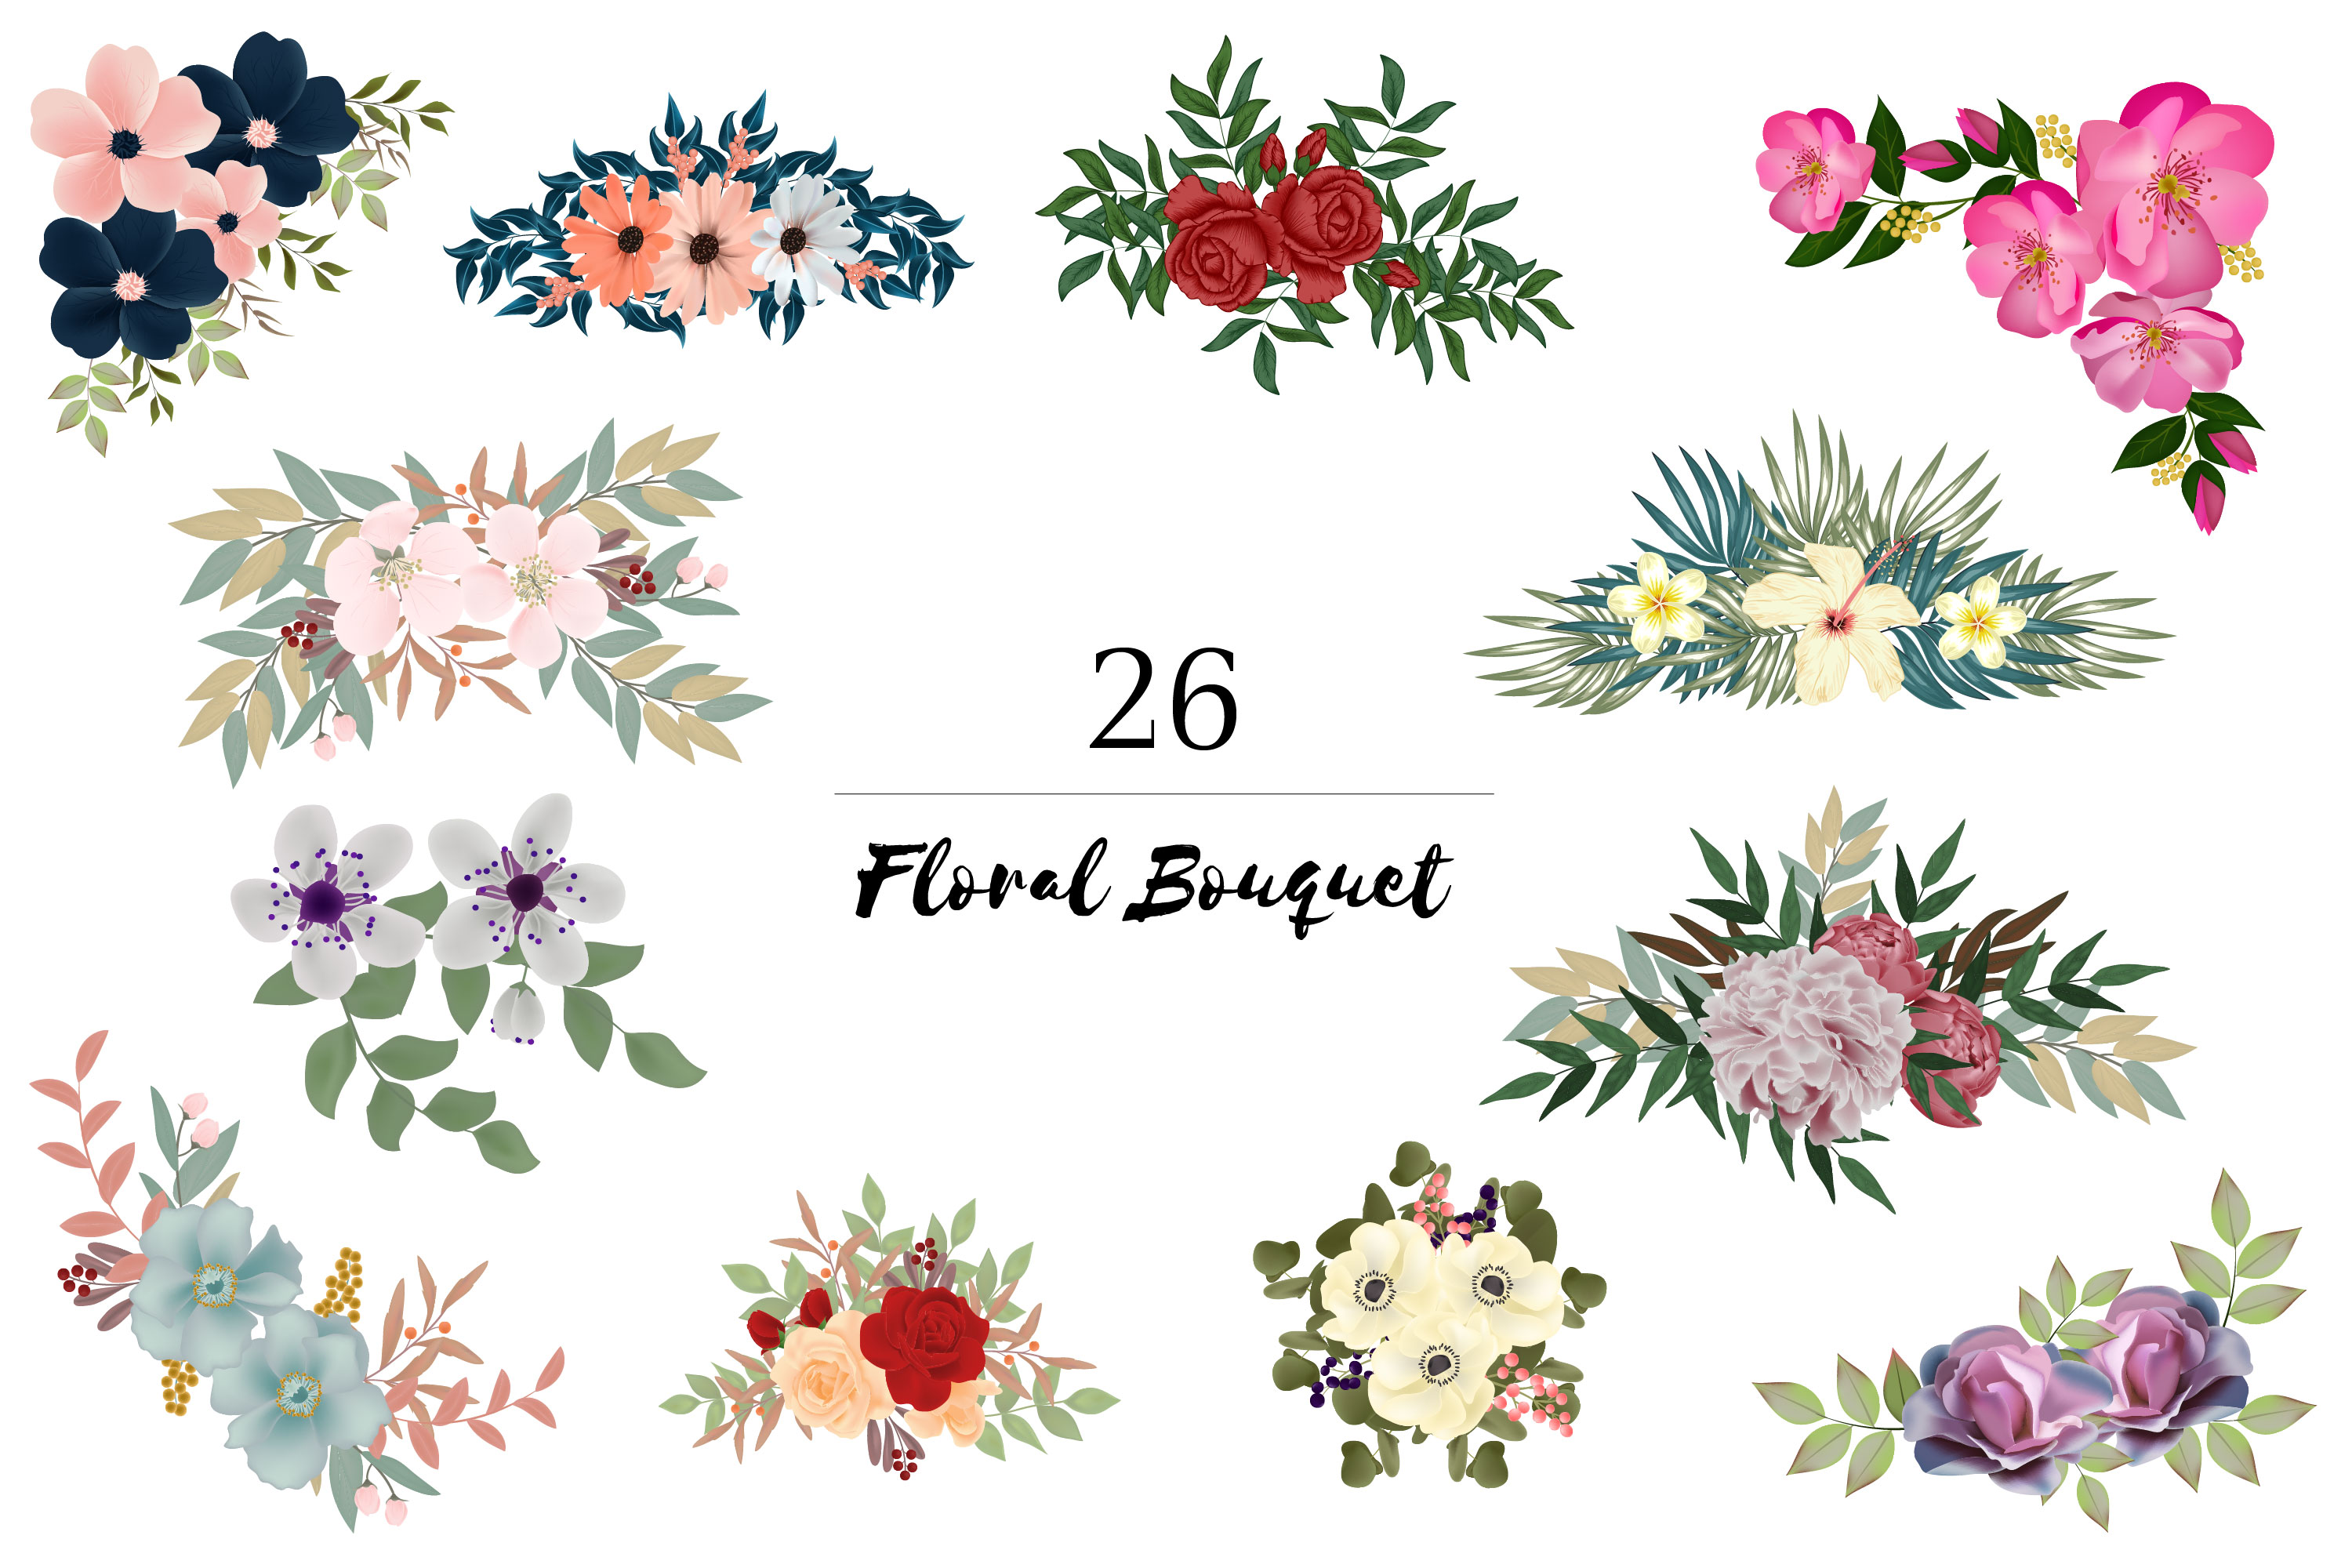 150 Flower and Floral Vector Illustration Element example image 2